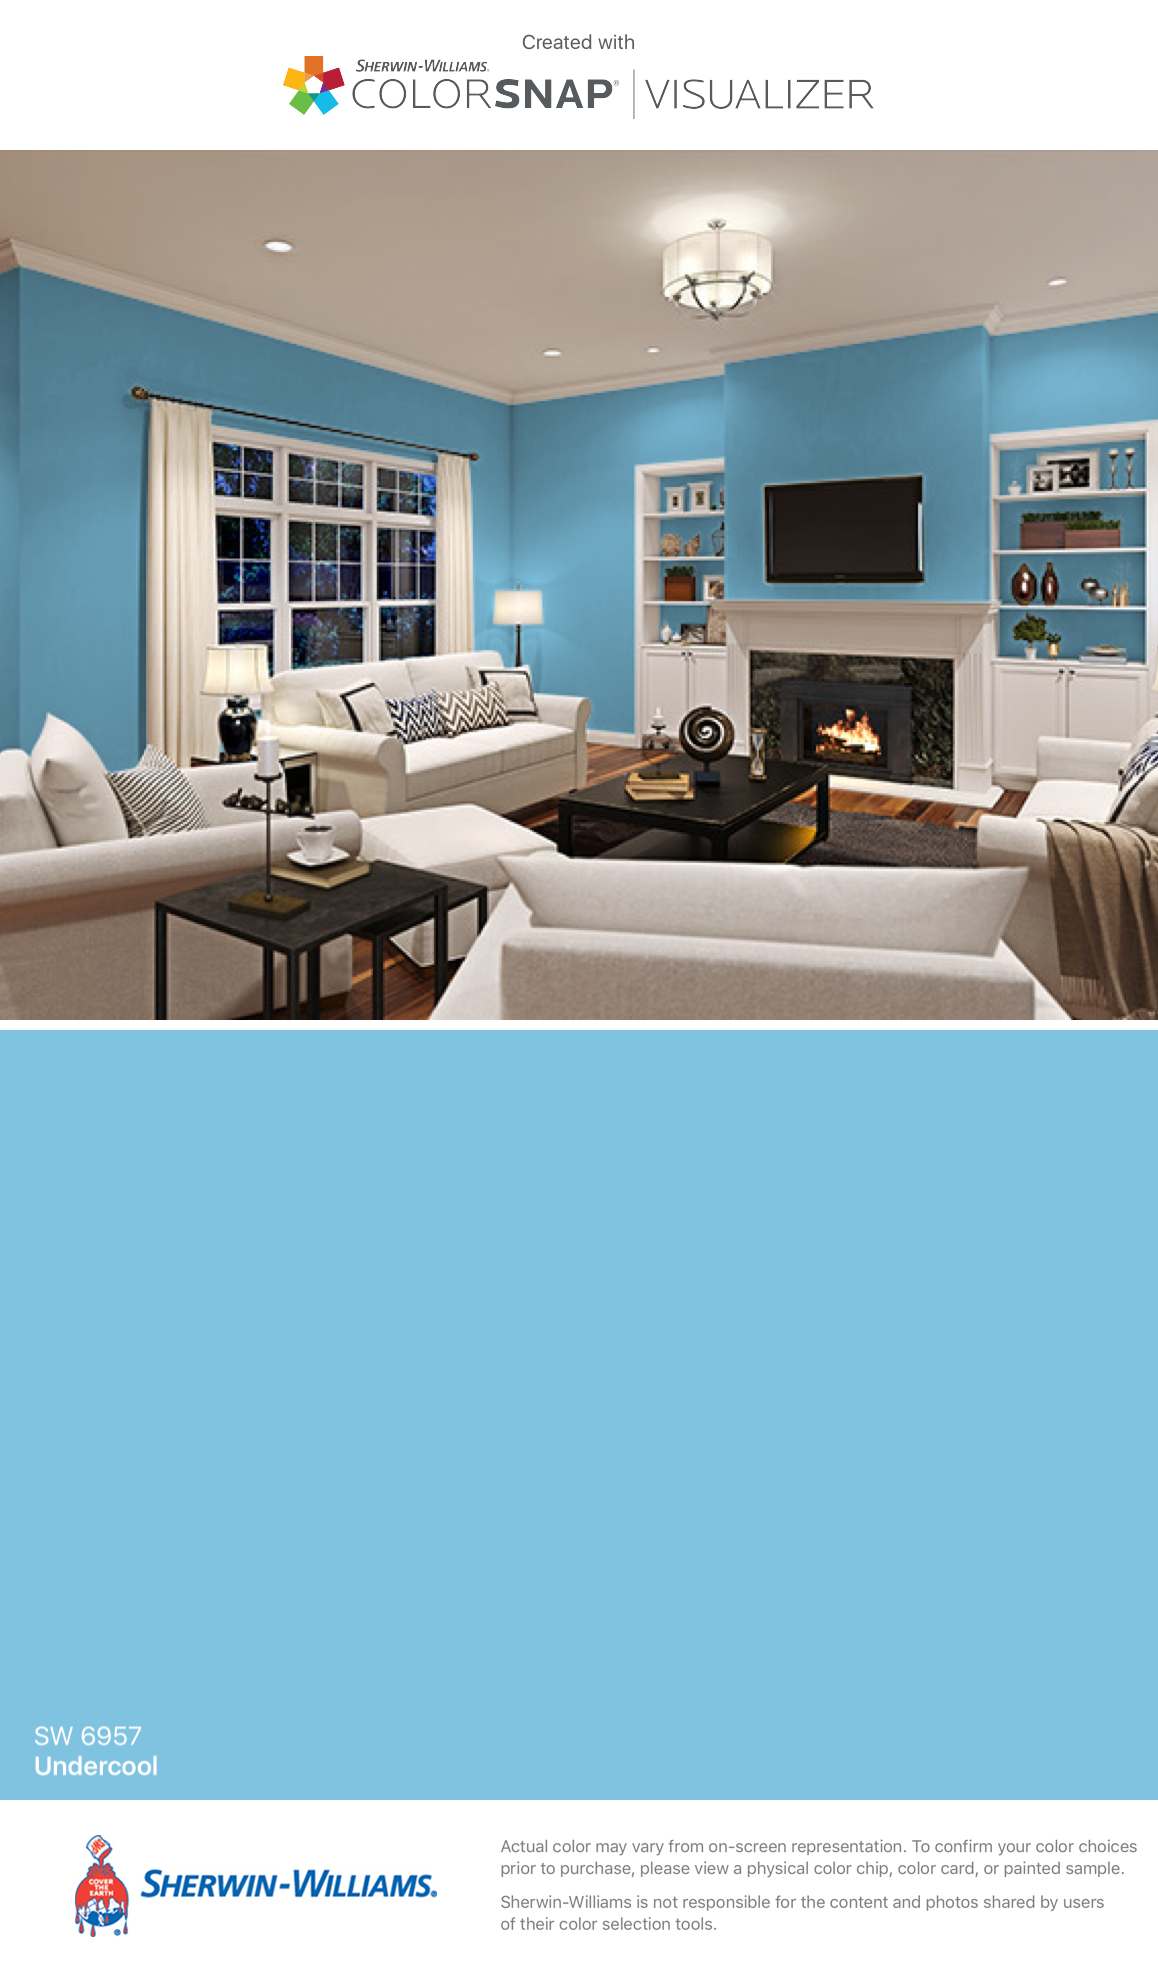 I Found This Color With Colorsnap Visualizer For Iphone By Sherwin Williams Undercool Sw 6957 Sherwin Williams Paint Colors Home Matching Paint Colors [ 1968 x 1158 Pixel ]